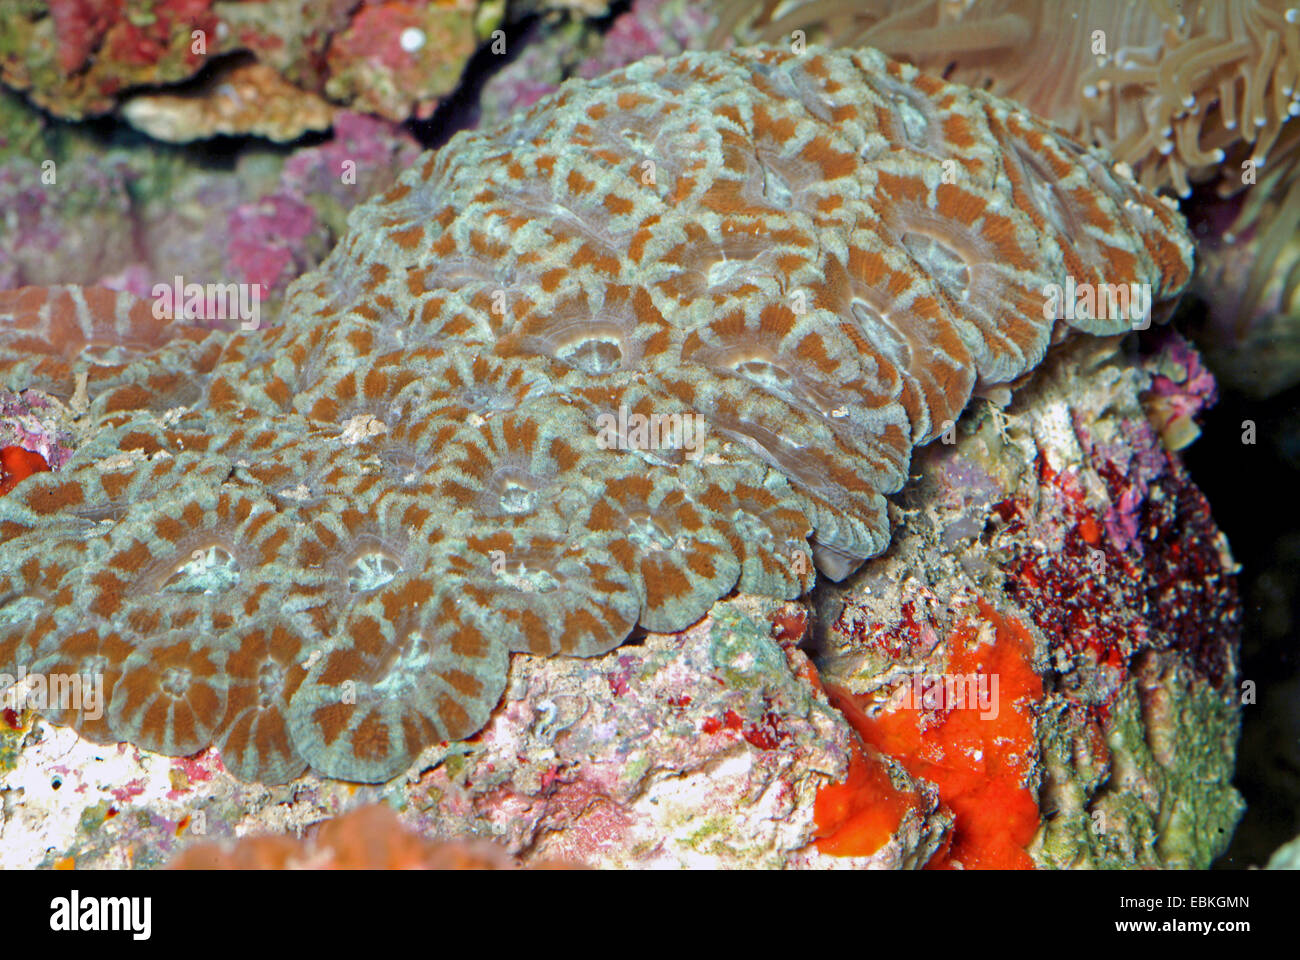 Stony coral (Acanthastrea lordhowensis), colony - Stock Image